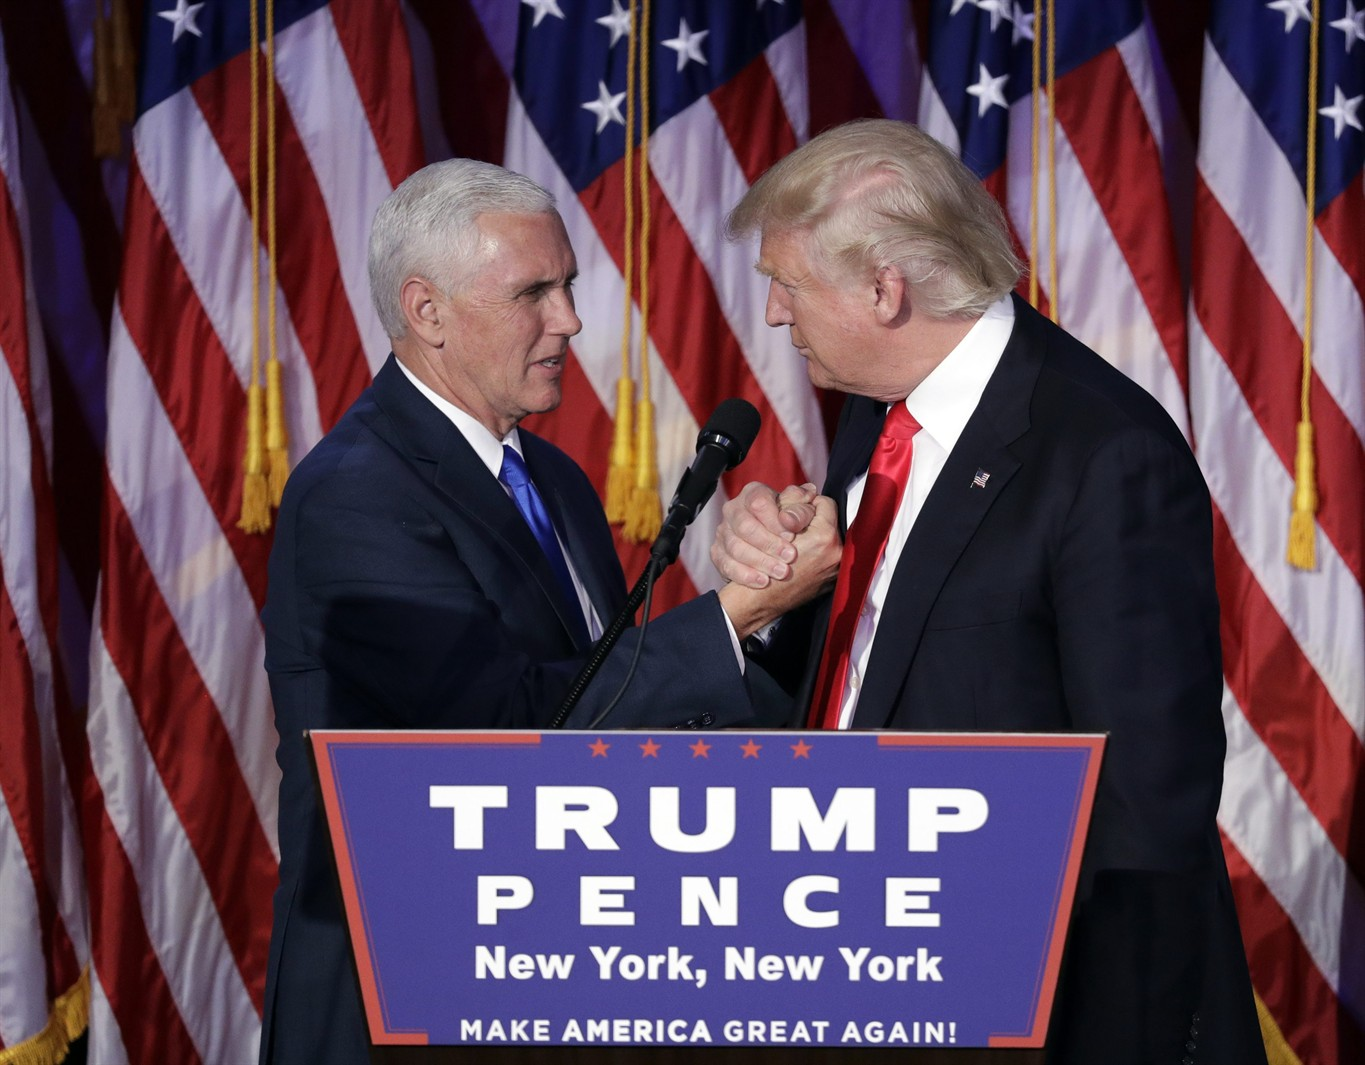 What does 'Trump Pence' mean? Mike Pence is confusing the world